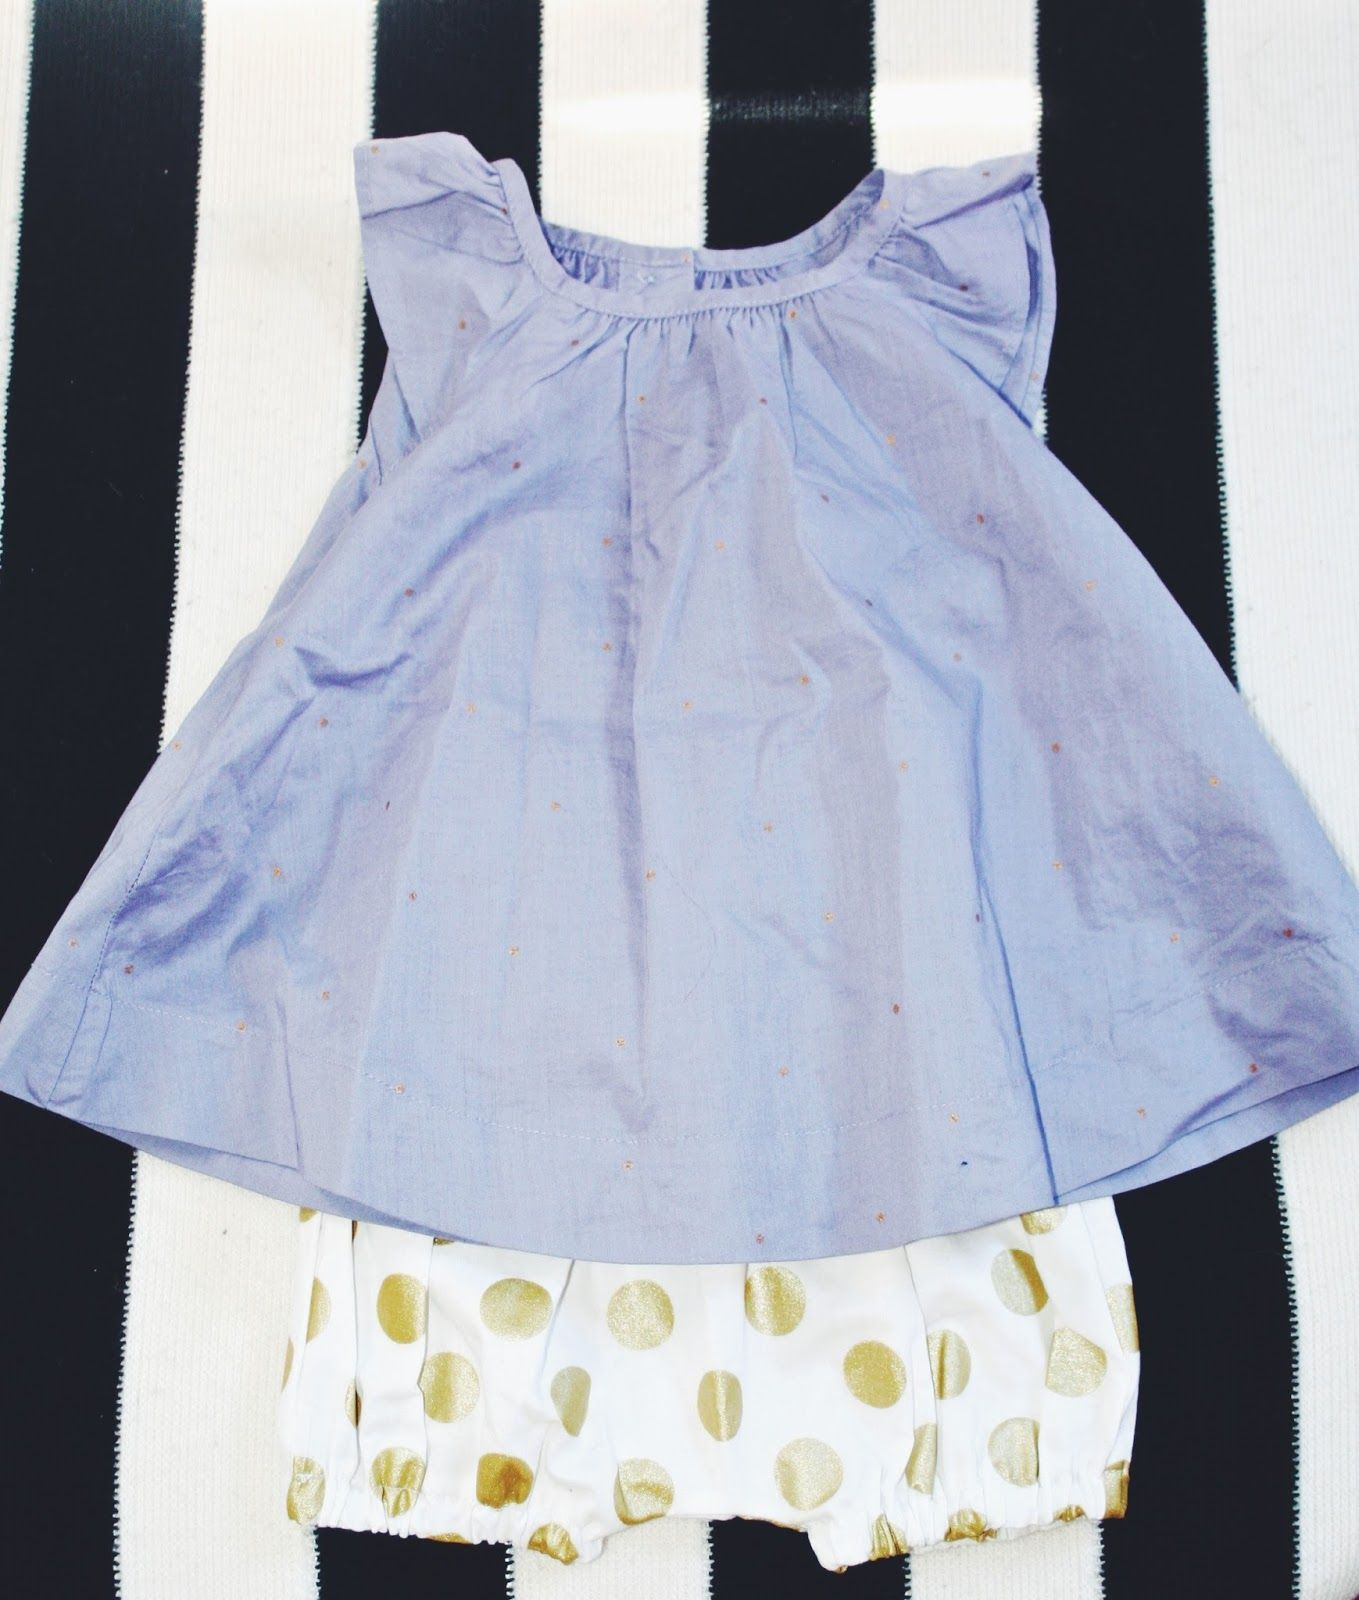 baby bloomers baby gap baby girl clothes baby girl style baby